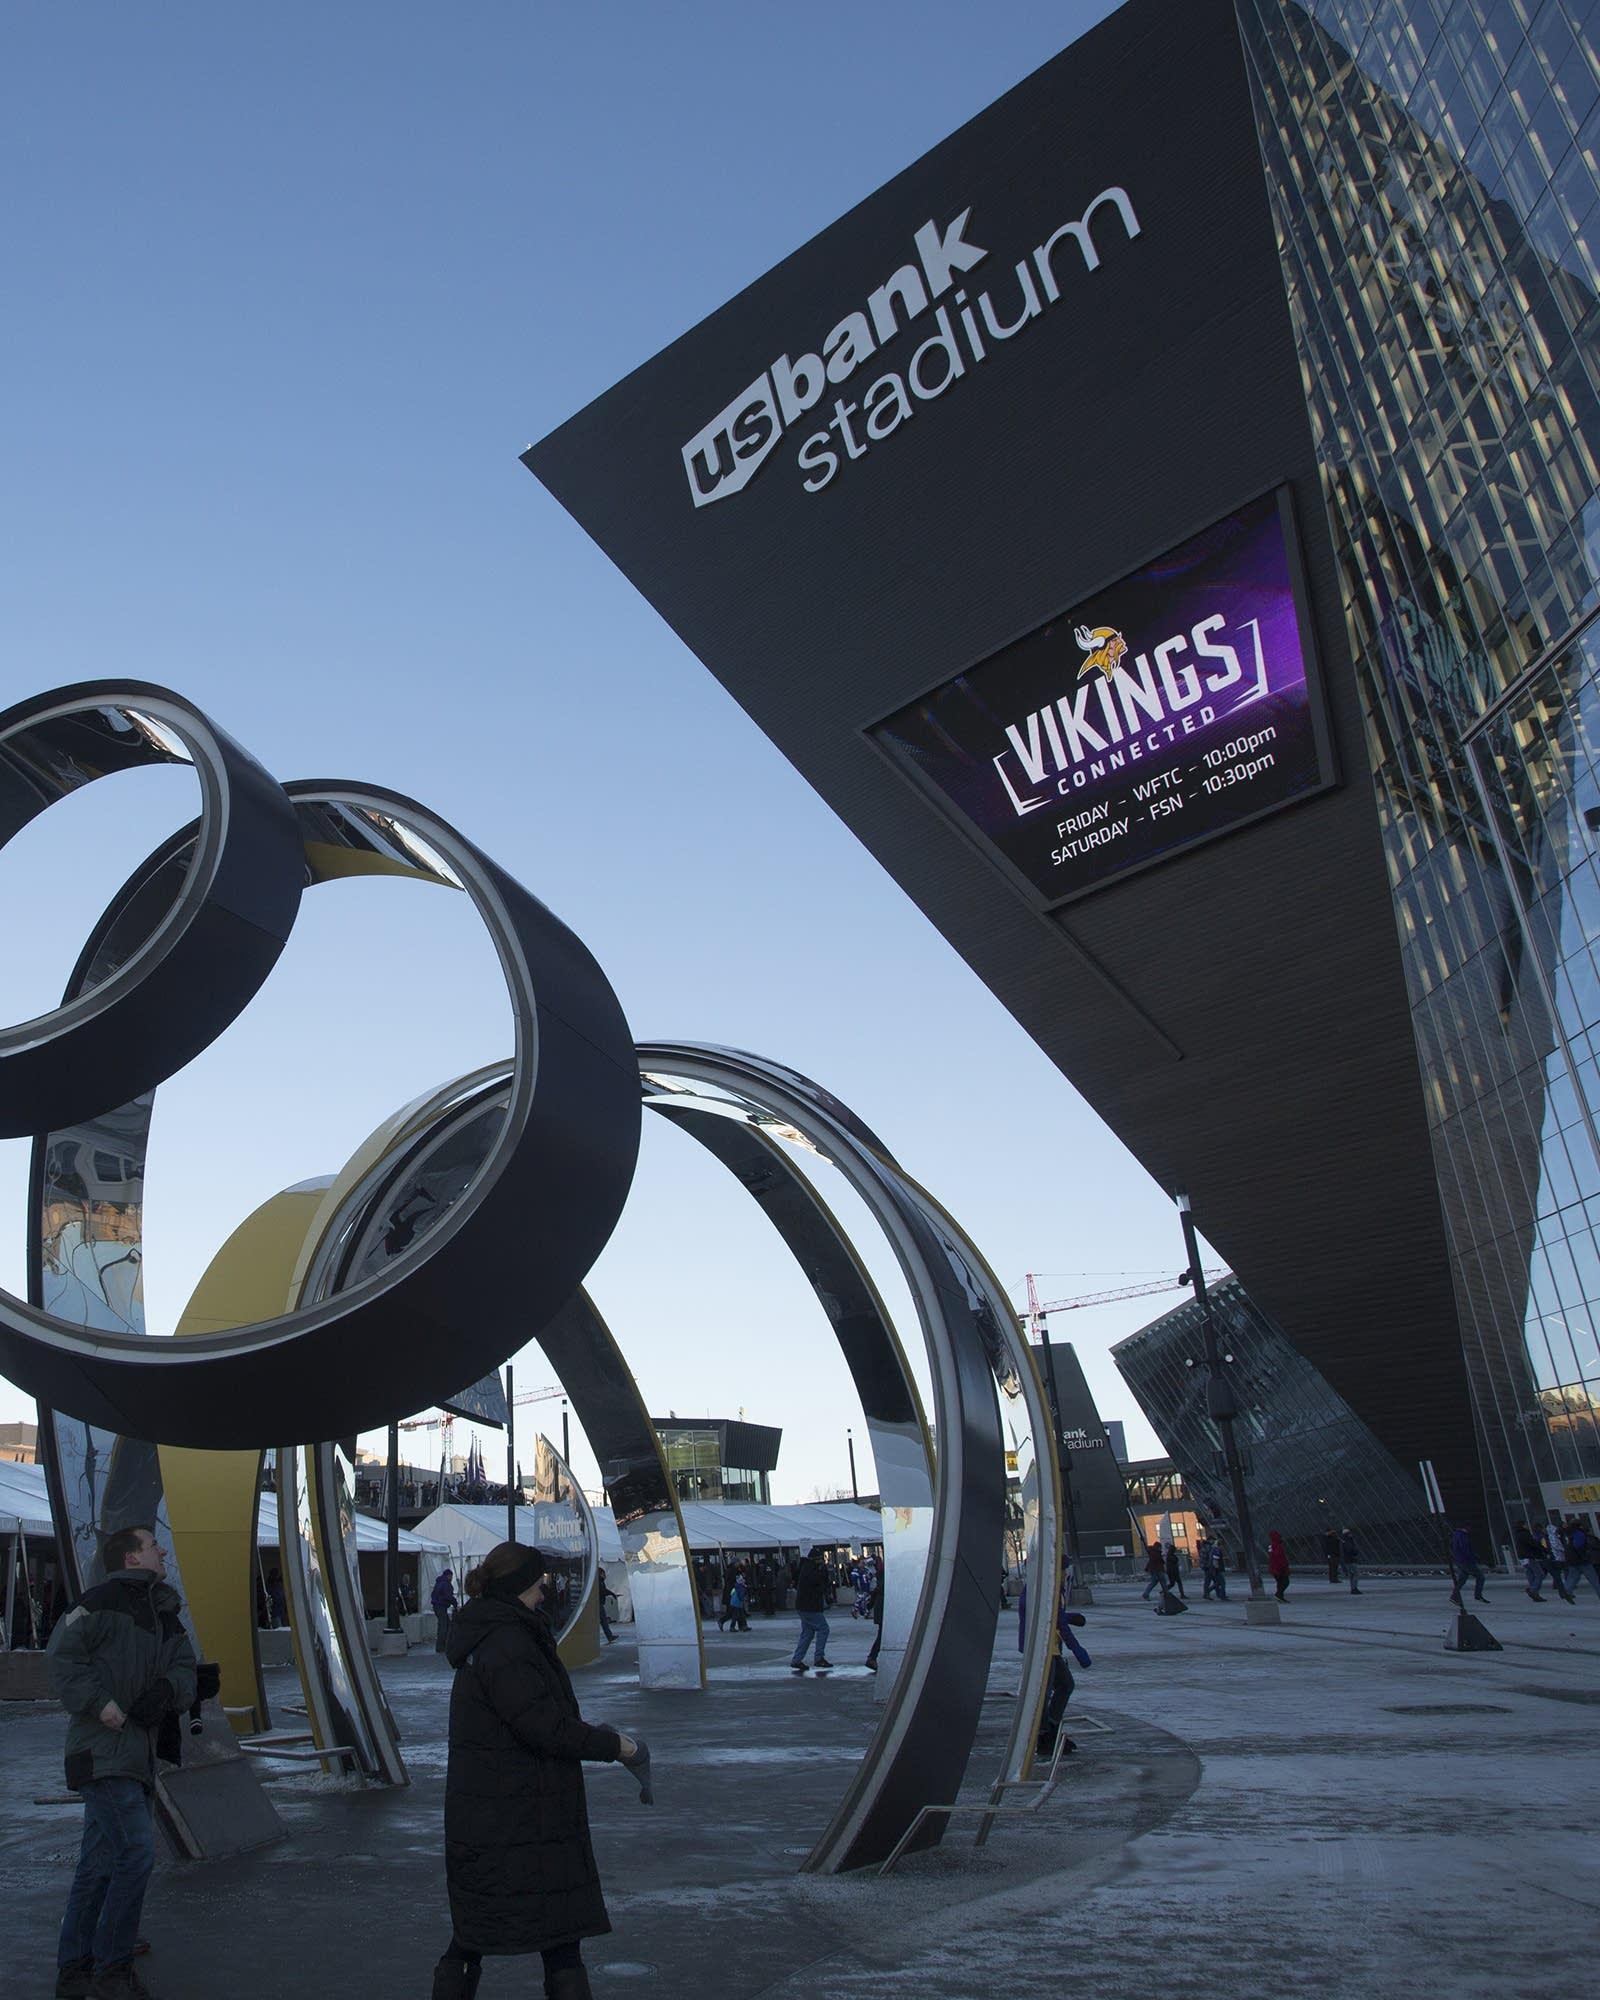 It's still unclear how much money the Super Bowl will bring